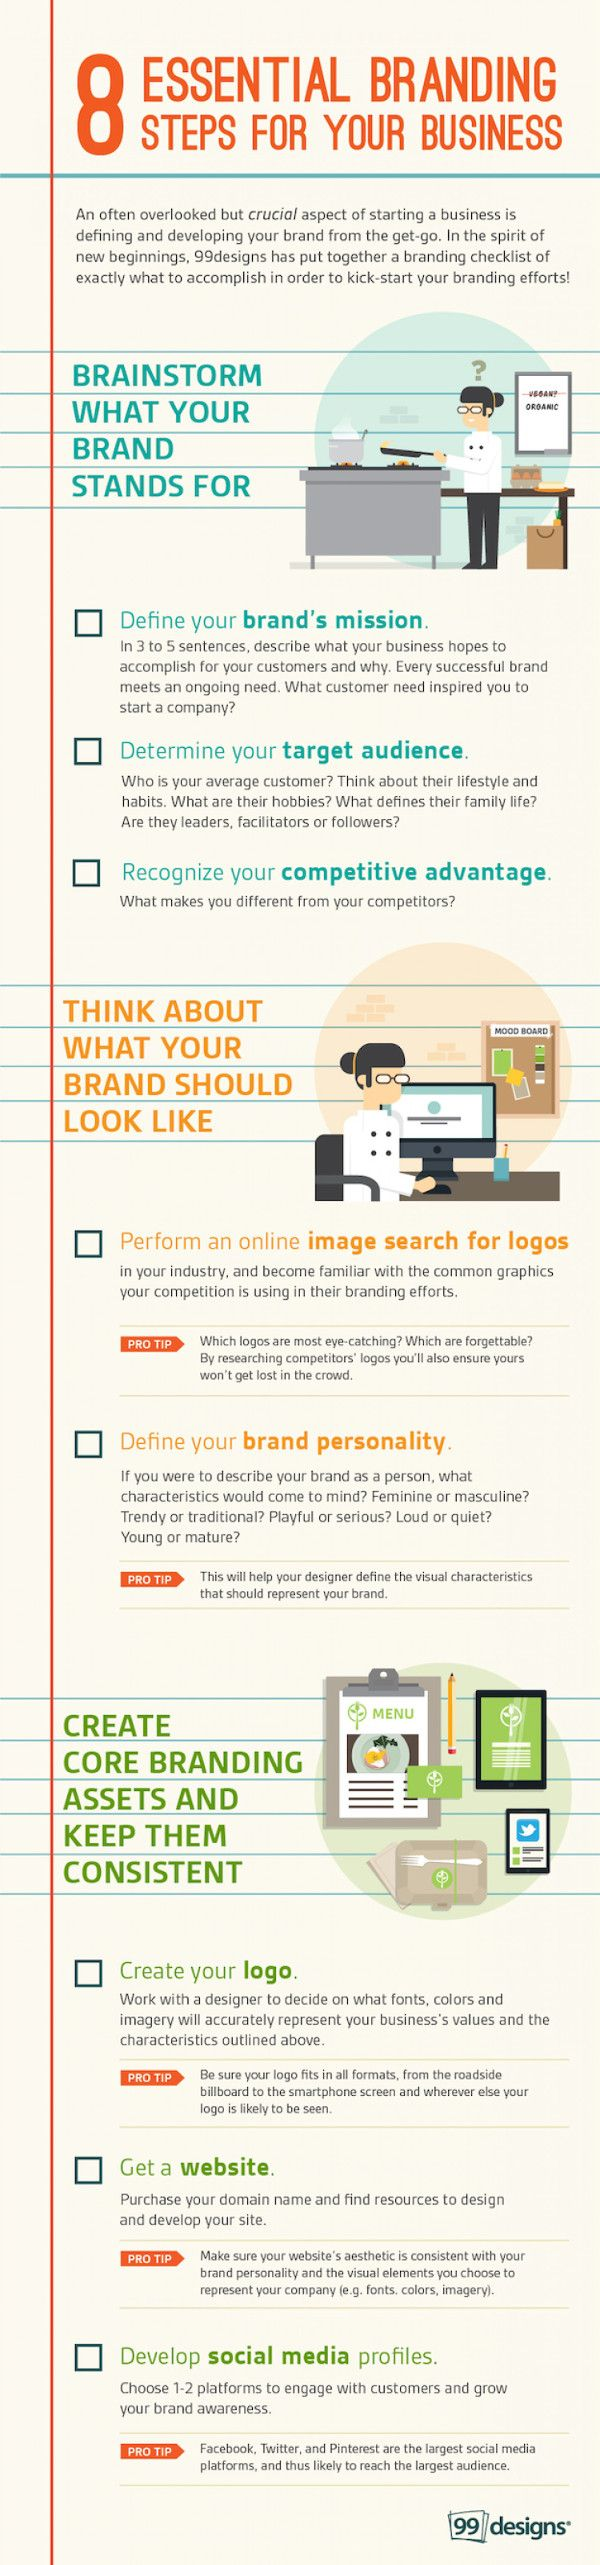 8 tips for small-business #branding: This #infographic from 99 Designs offers advice on how to make your small business' brand really shine.